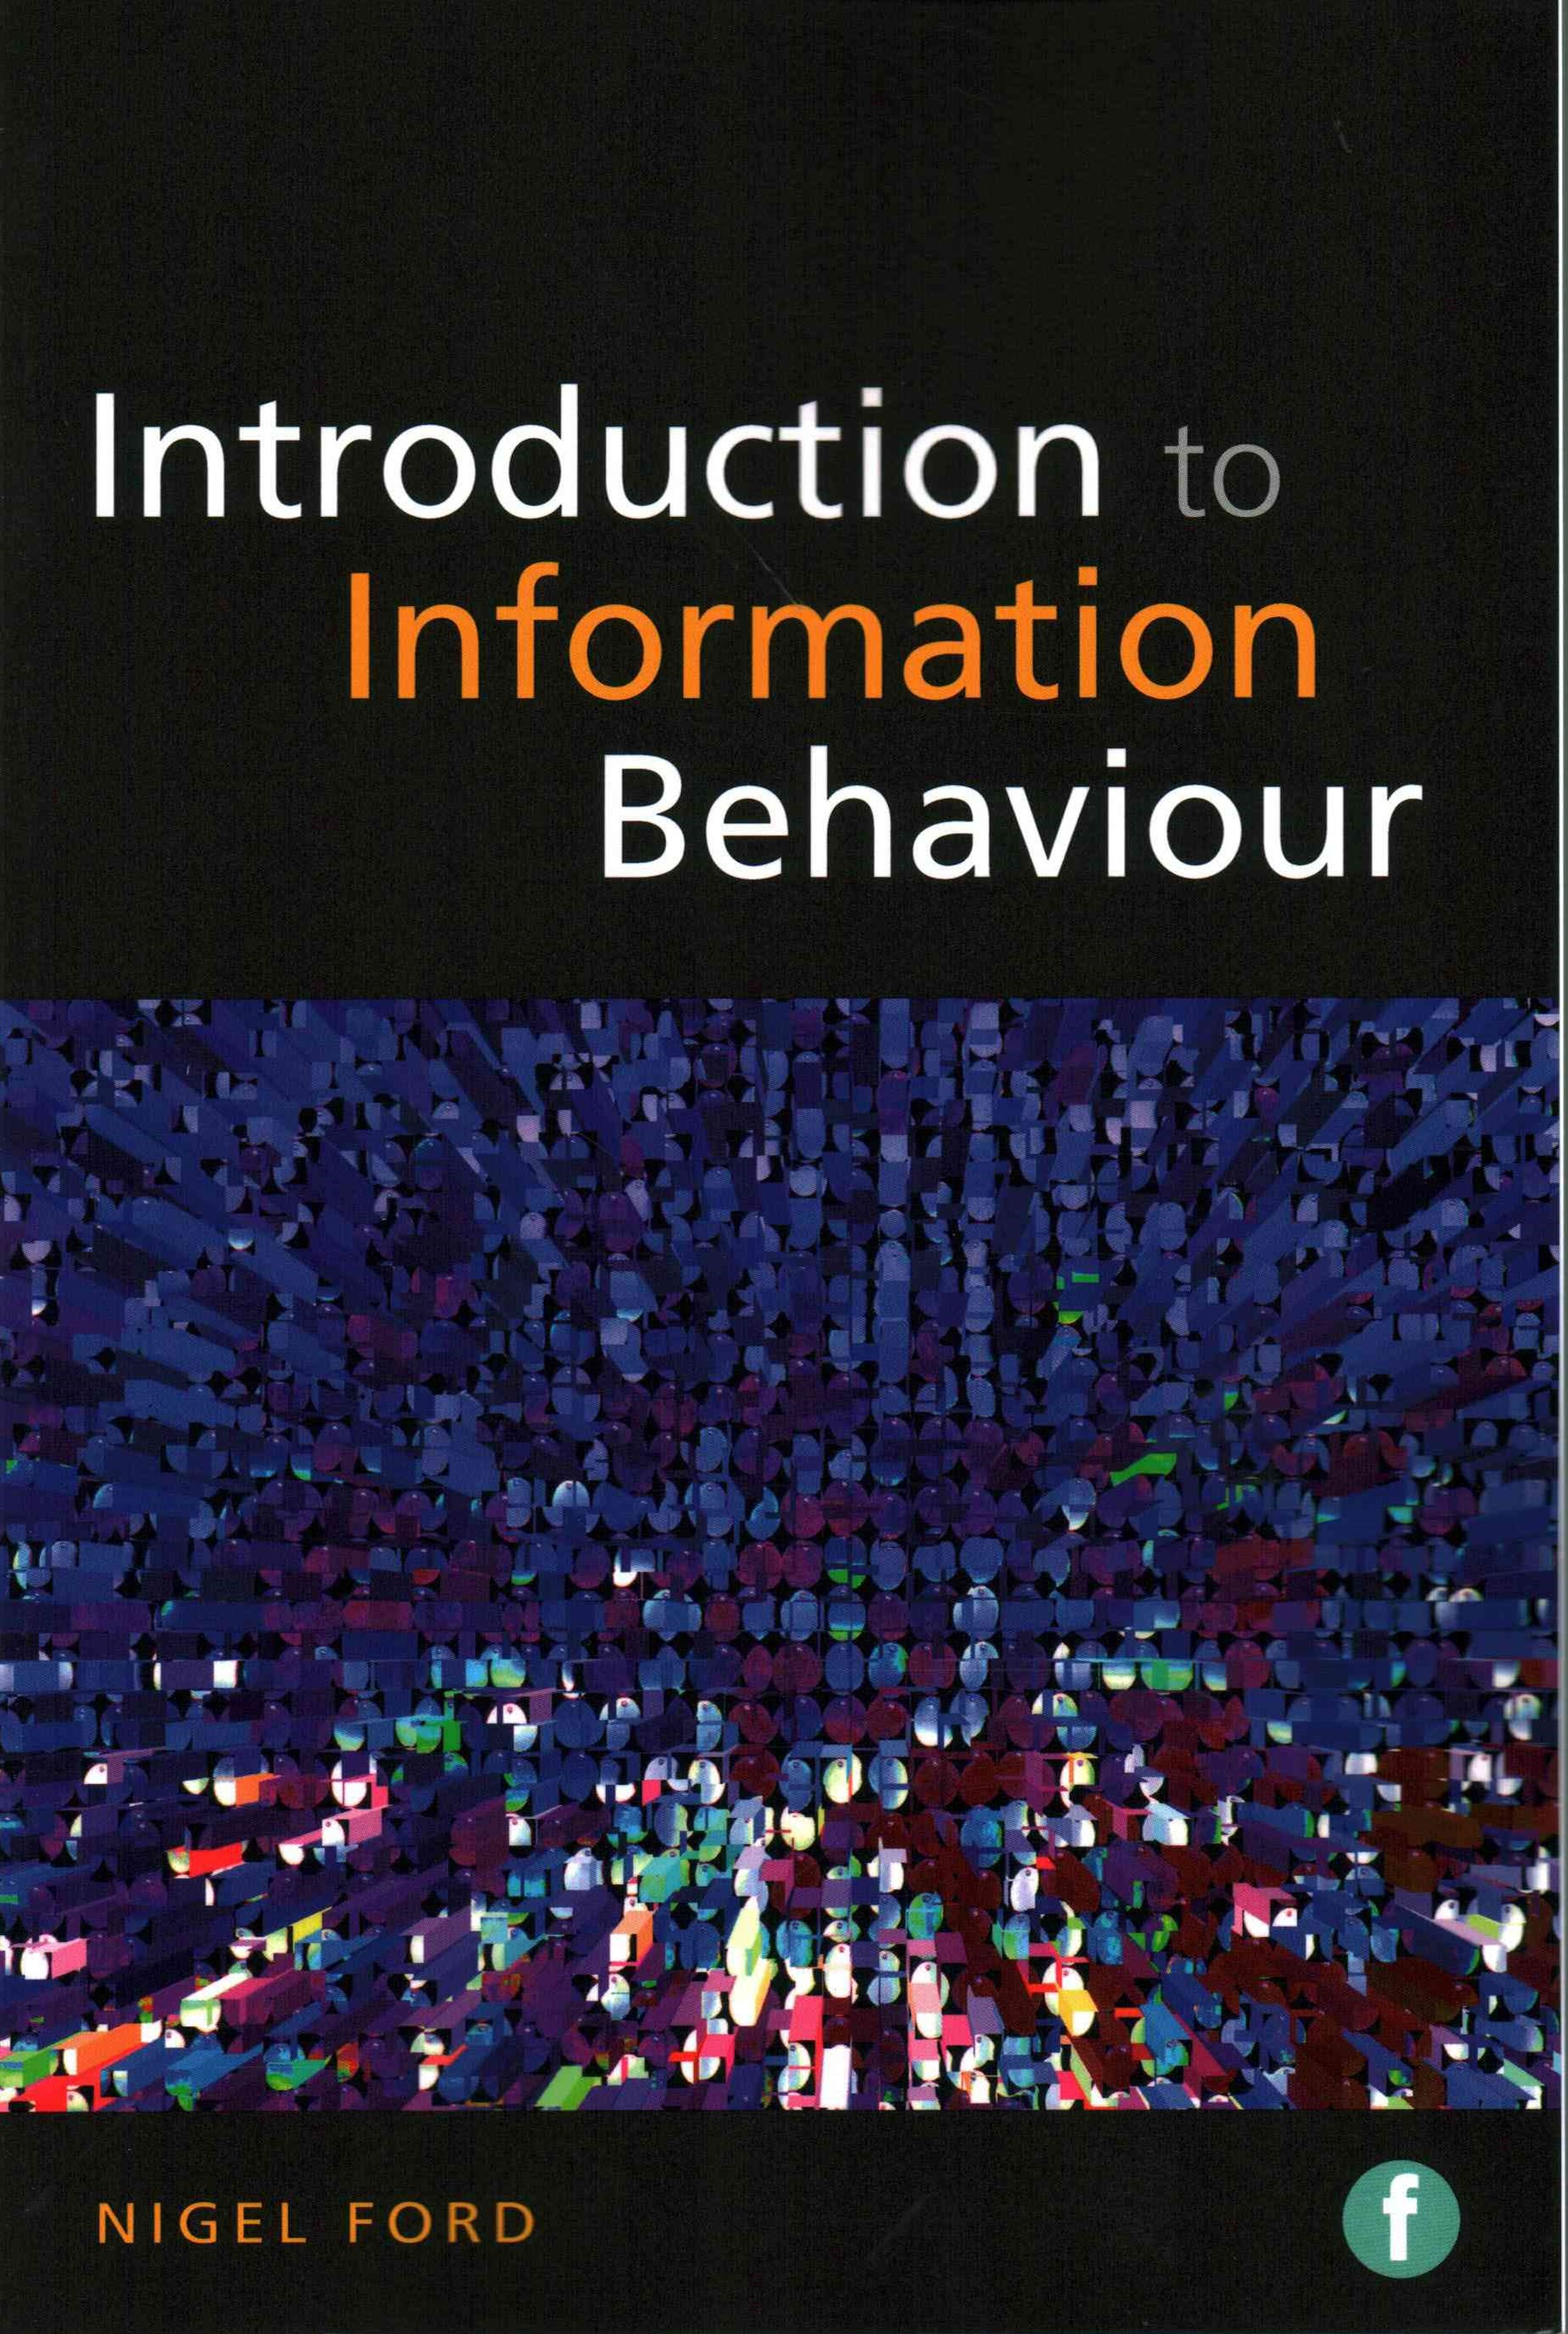 Introduction to Information Behaviour